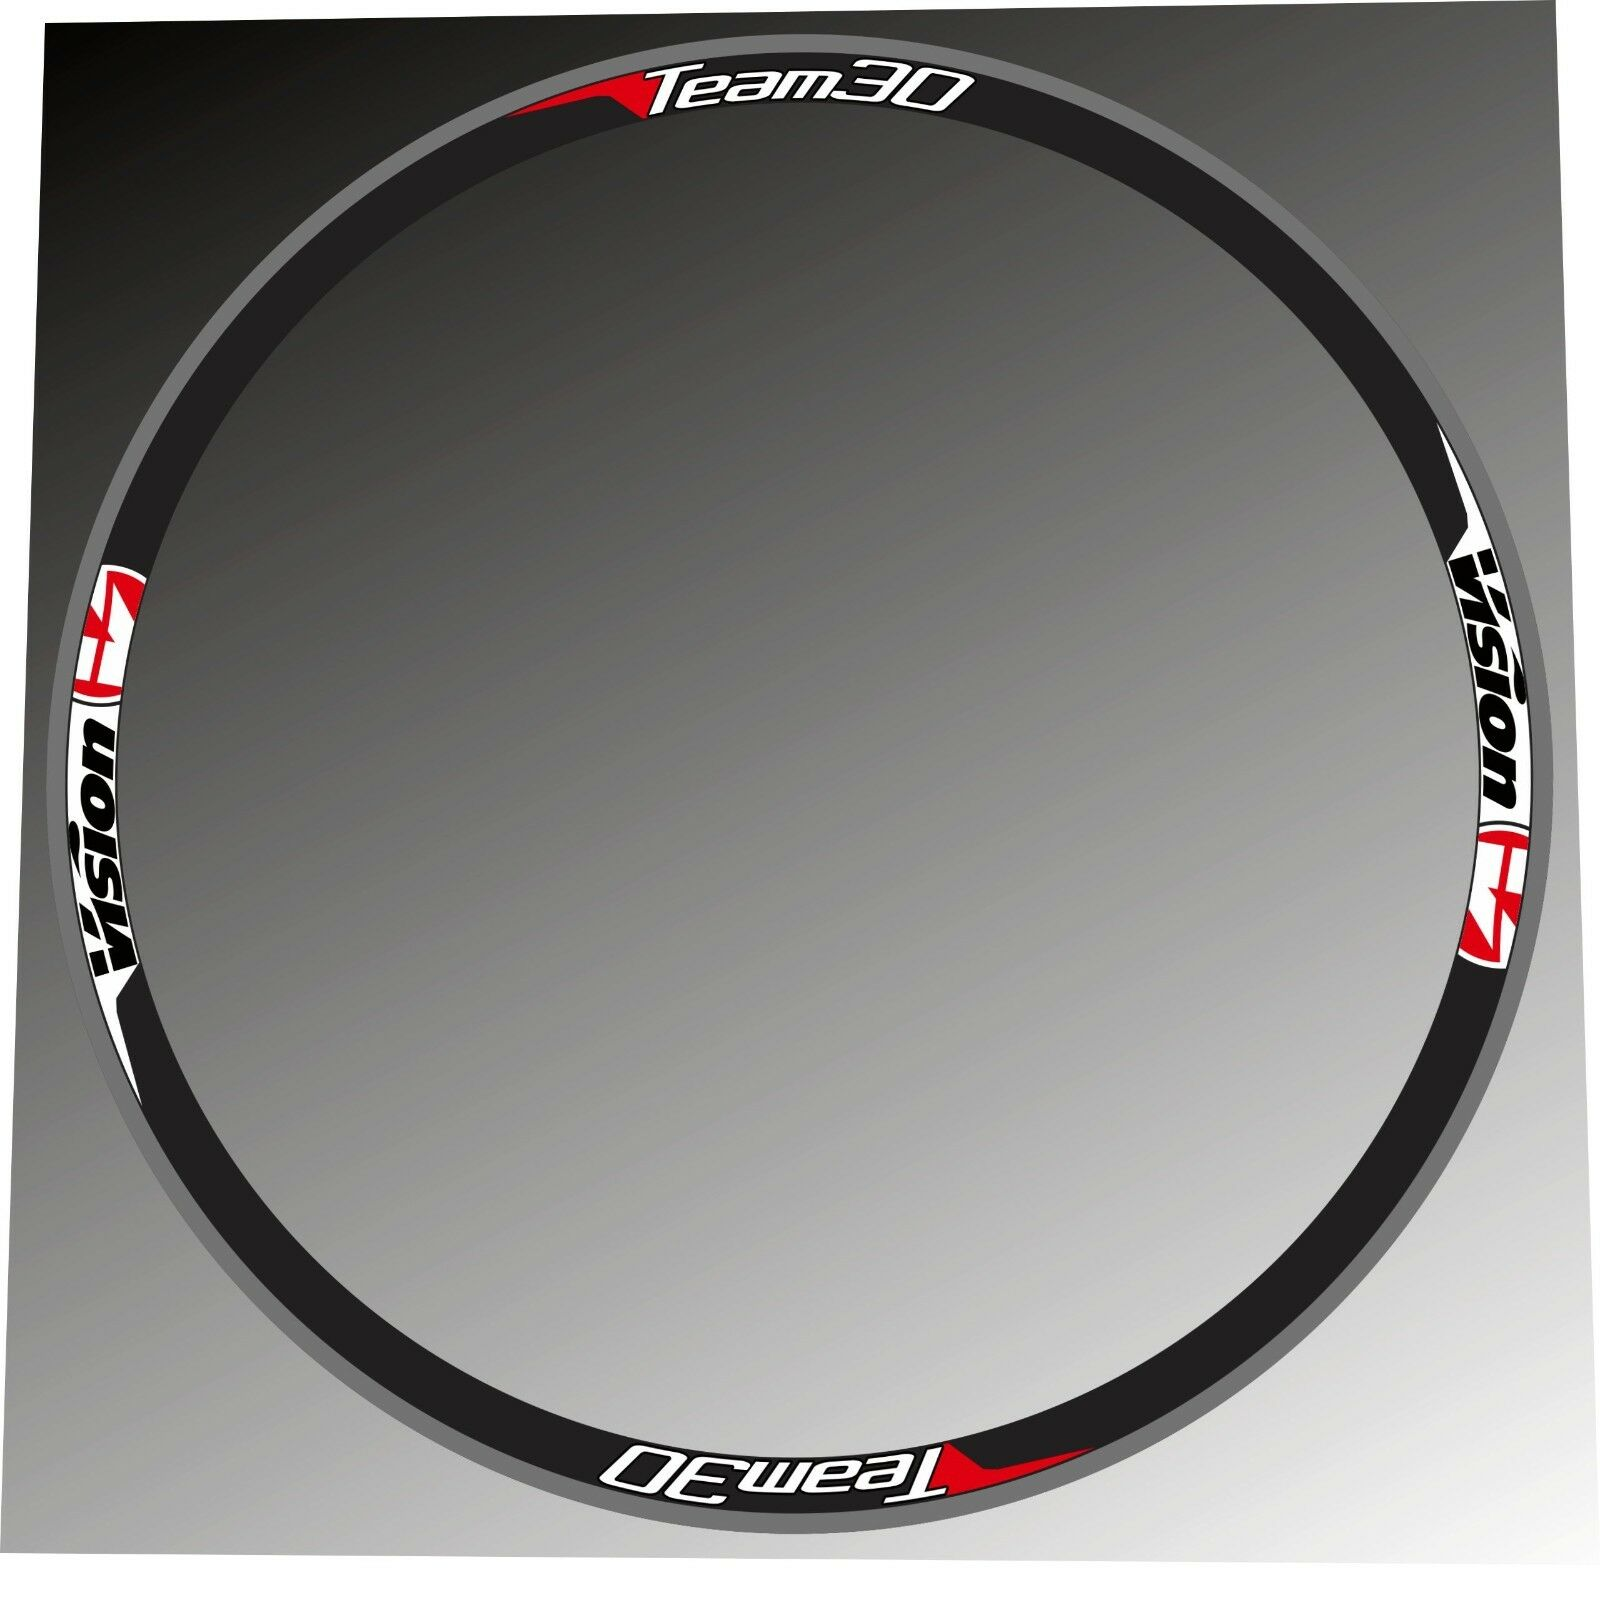 VISION TEAM 30 RED-WHITE COLOR REPLACEMENT RIM DECAL SET FOR 2 RIMS